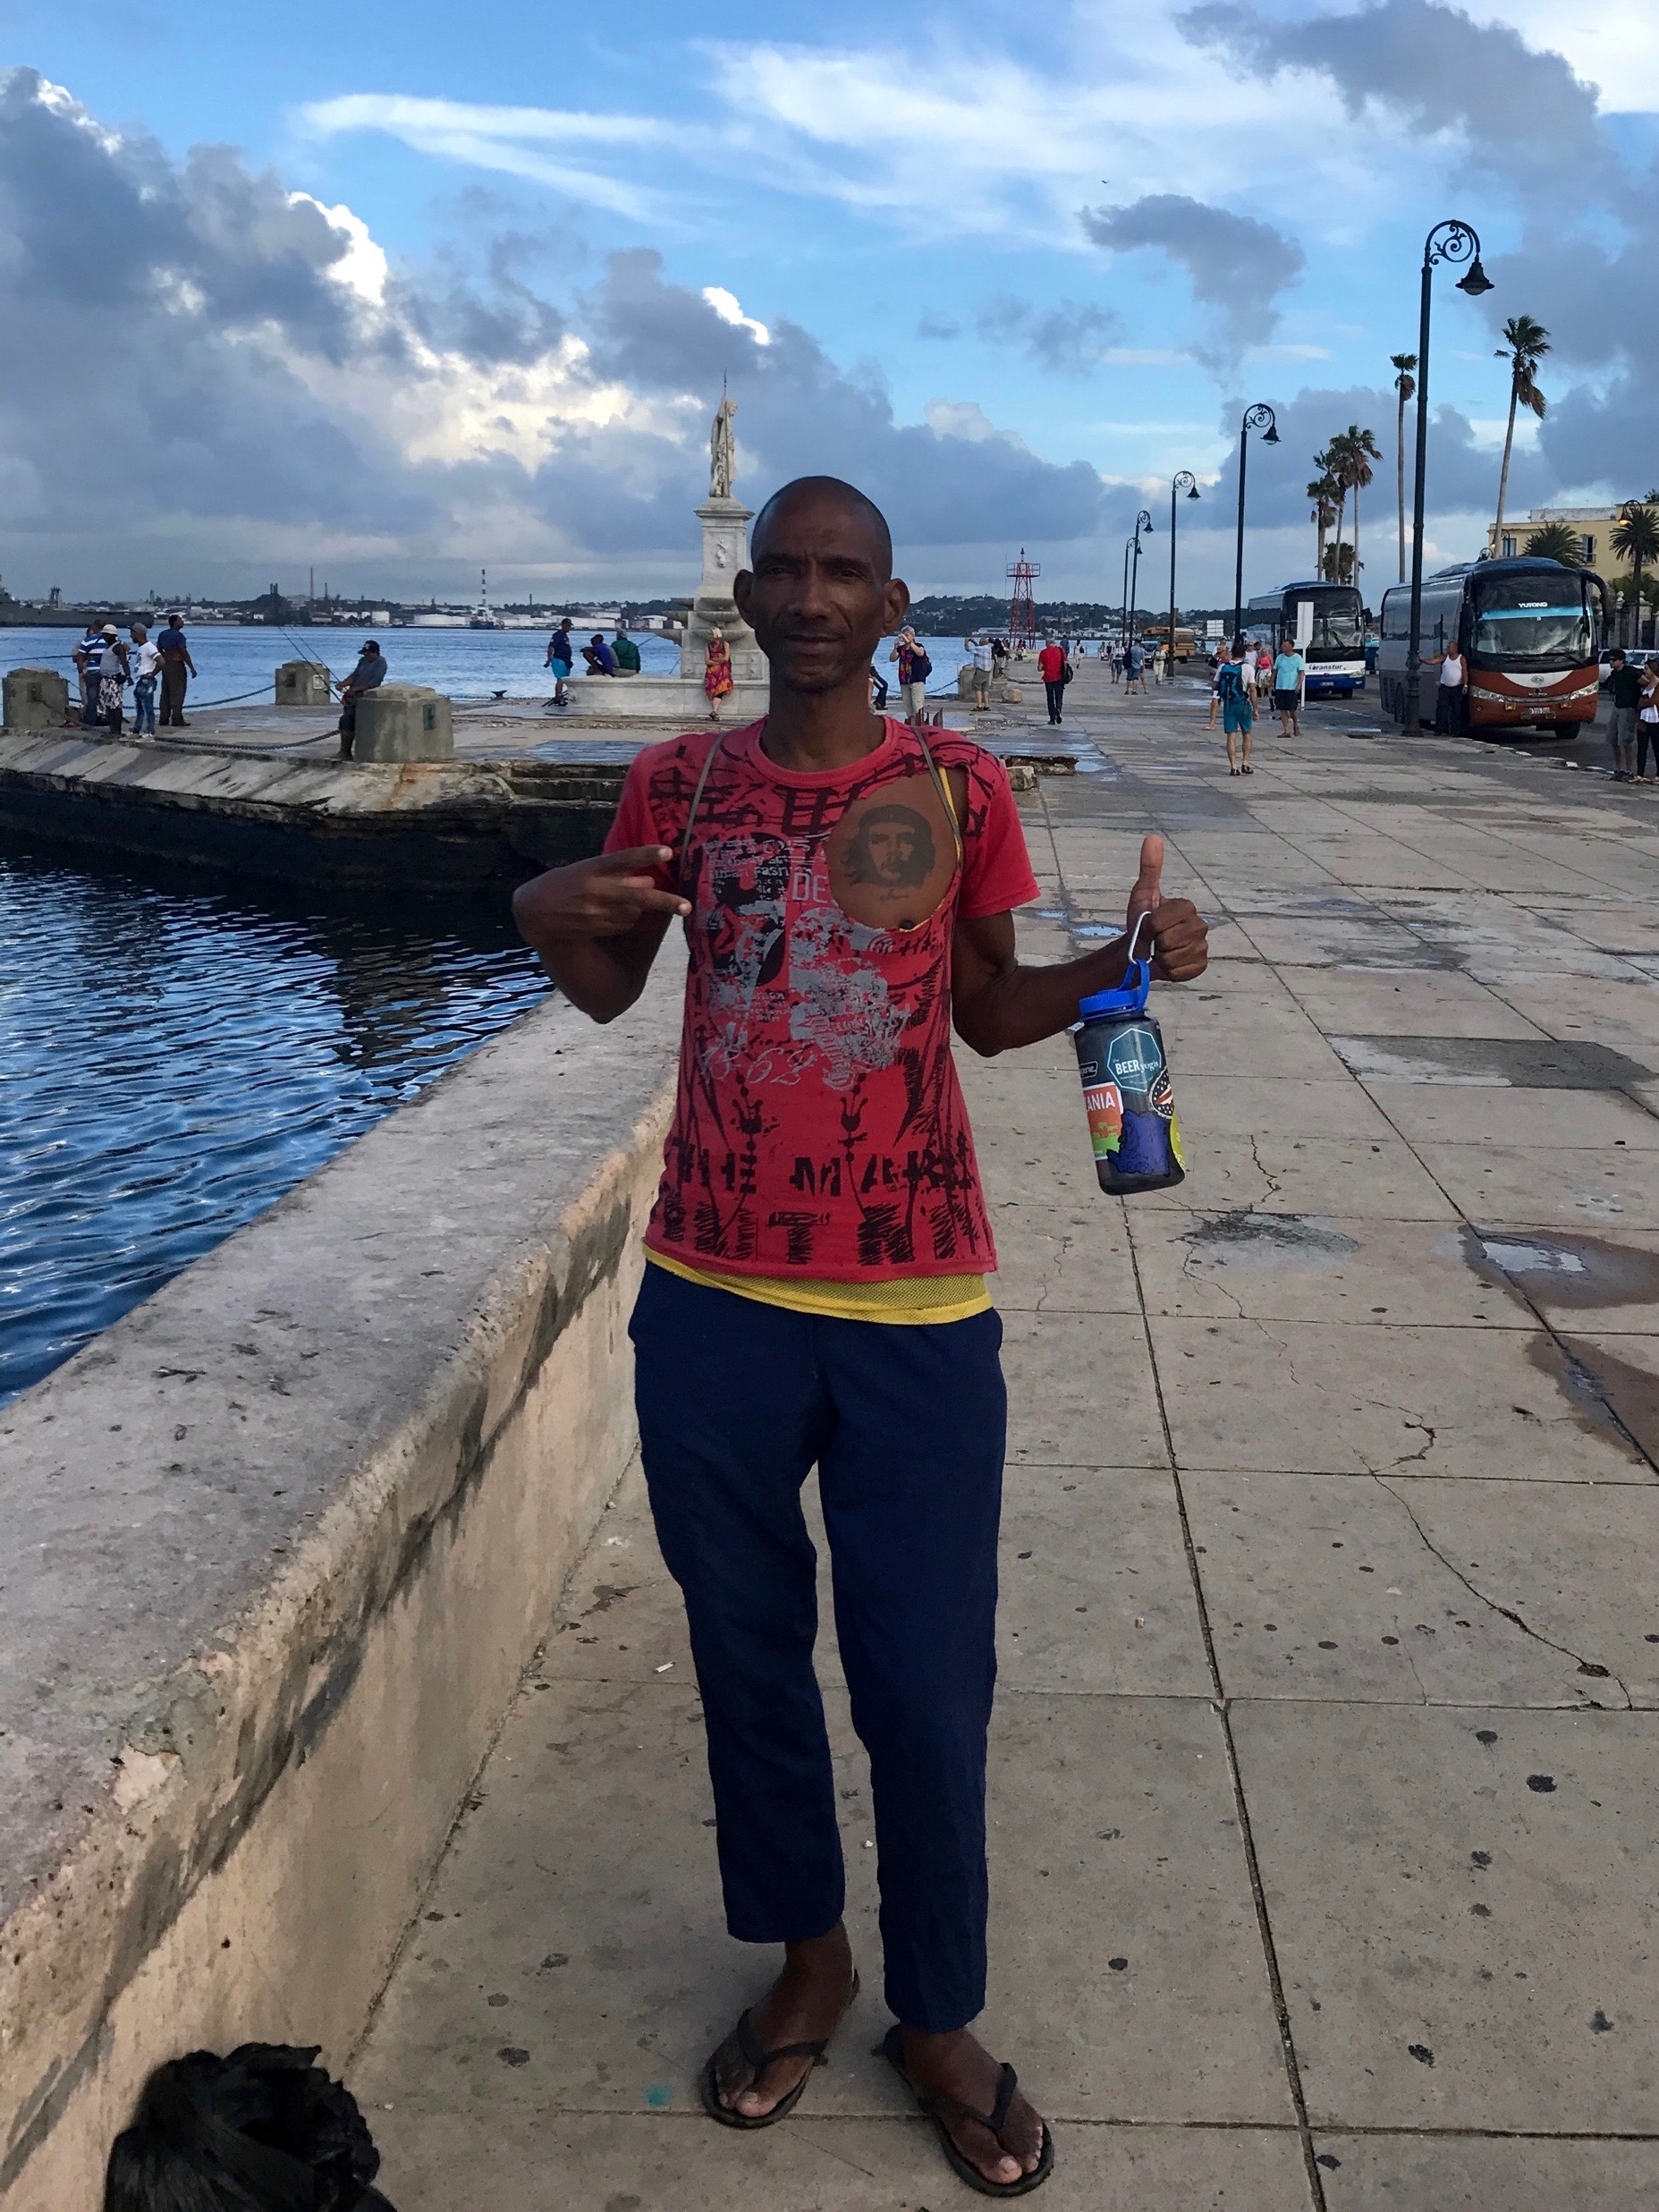 this havana local struck up convo with us as we sat overlooking the waterway to the city's forts. he told us about his life in cuba v the states v back in cuba. he lived in chicago and minnesota. he knew where cleveland was. he wanted sean's water bottle as a memento. requested we leave with a photo of him. we thought there was no way his stories were true. then we're pretty sure we noticed him pop up in a music video someone had posted to my facebook page before we went on our trip.  assume you know nothing. keep learning. ;-)